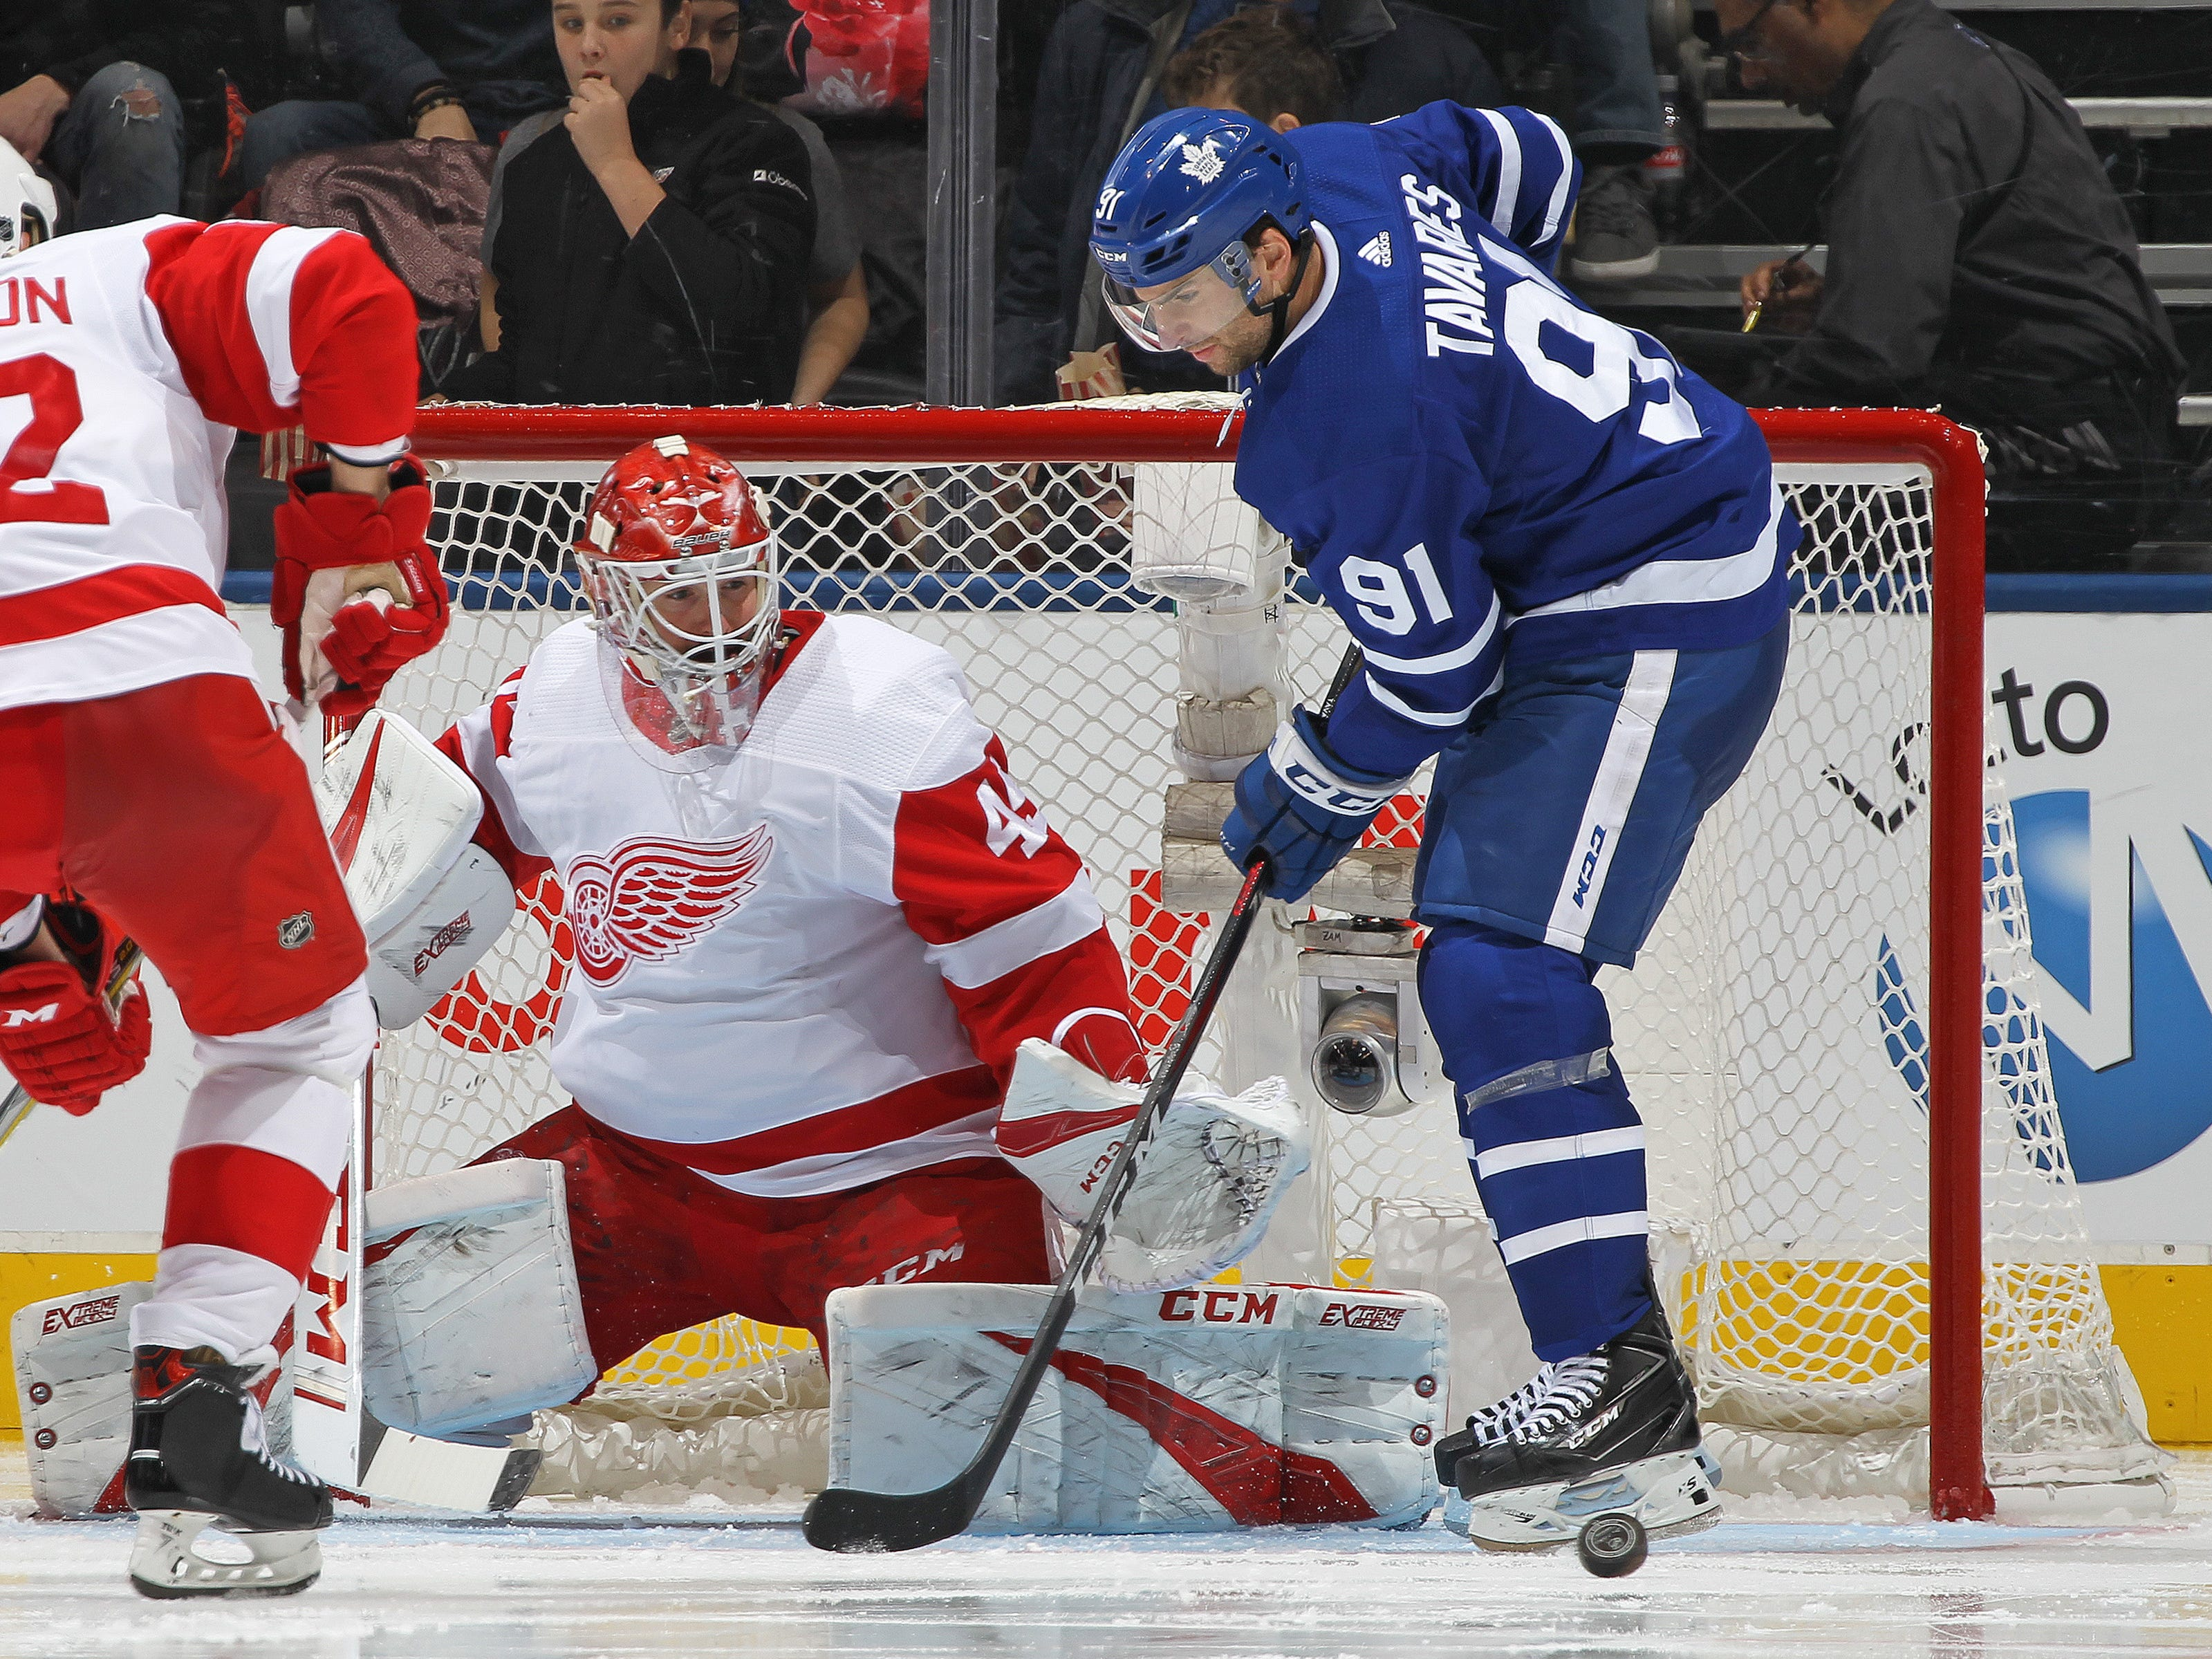 Detroit Red Wings goalie Jonathan Bernier stops John Tavares of the Toronto Maple Leafs at Scotiabank Arena on Dec. 6, 2018 in Toronto, Ontario, Canada.